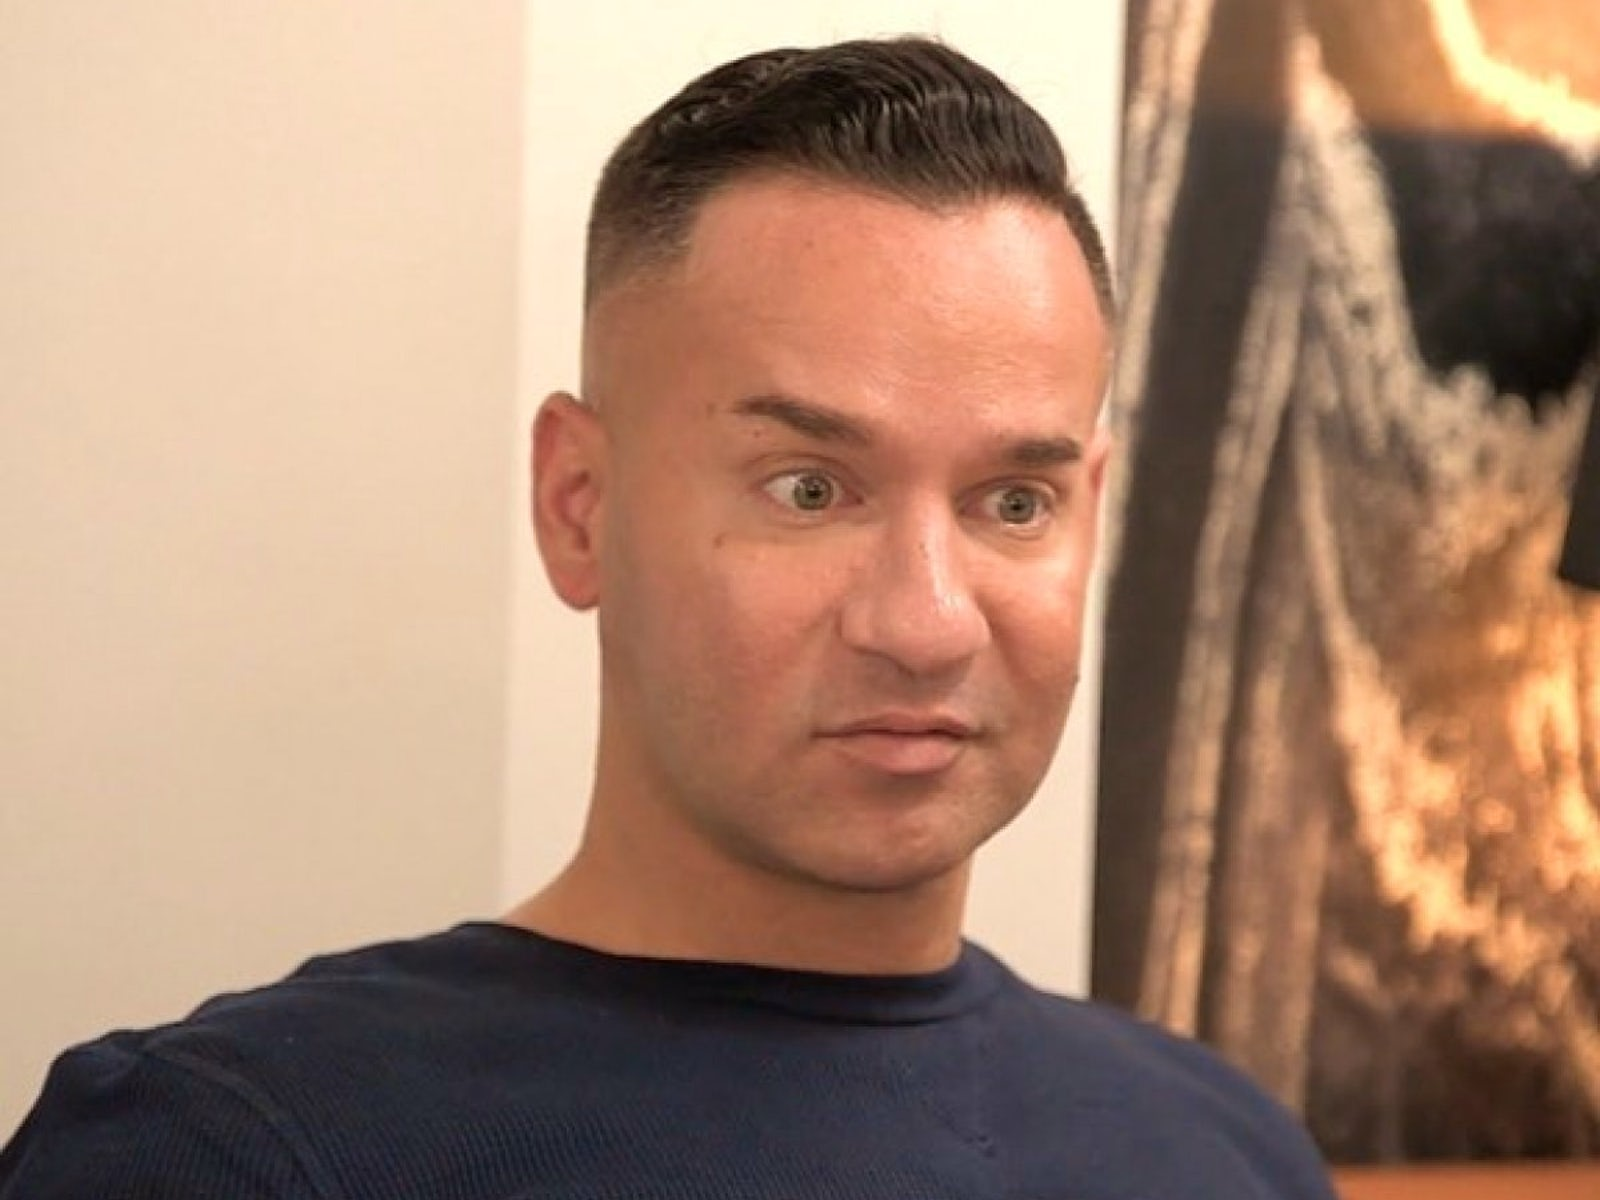 Angelina Jersey Shore Nude mike sorrentino has befriended fyre festival co-founder in